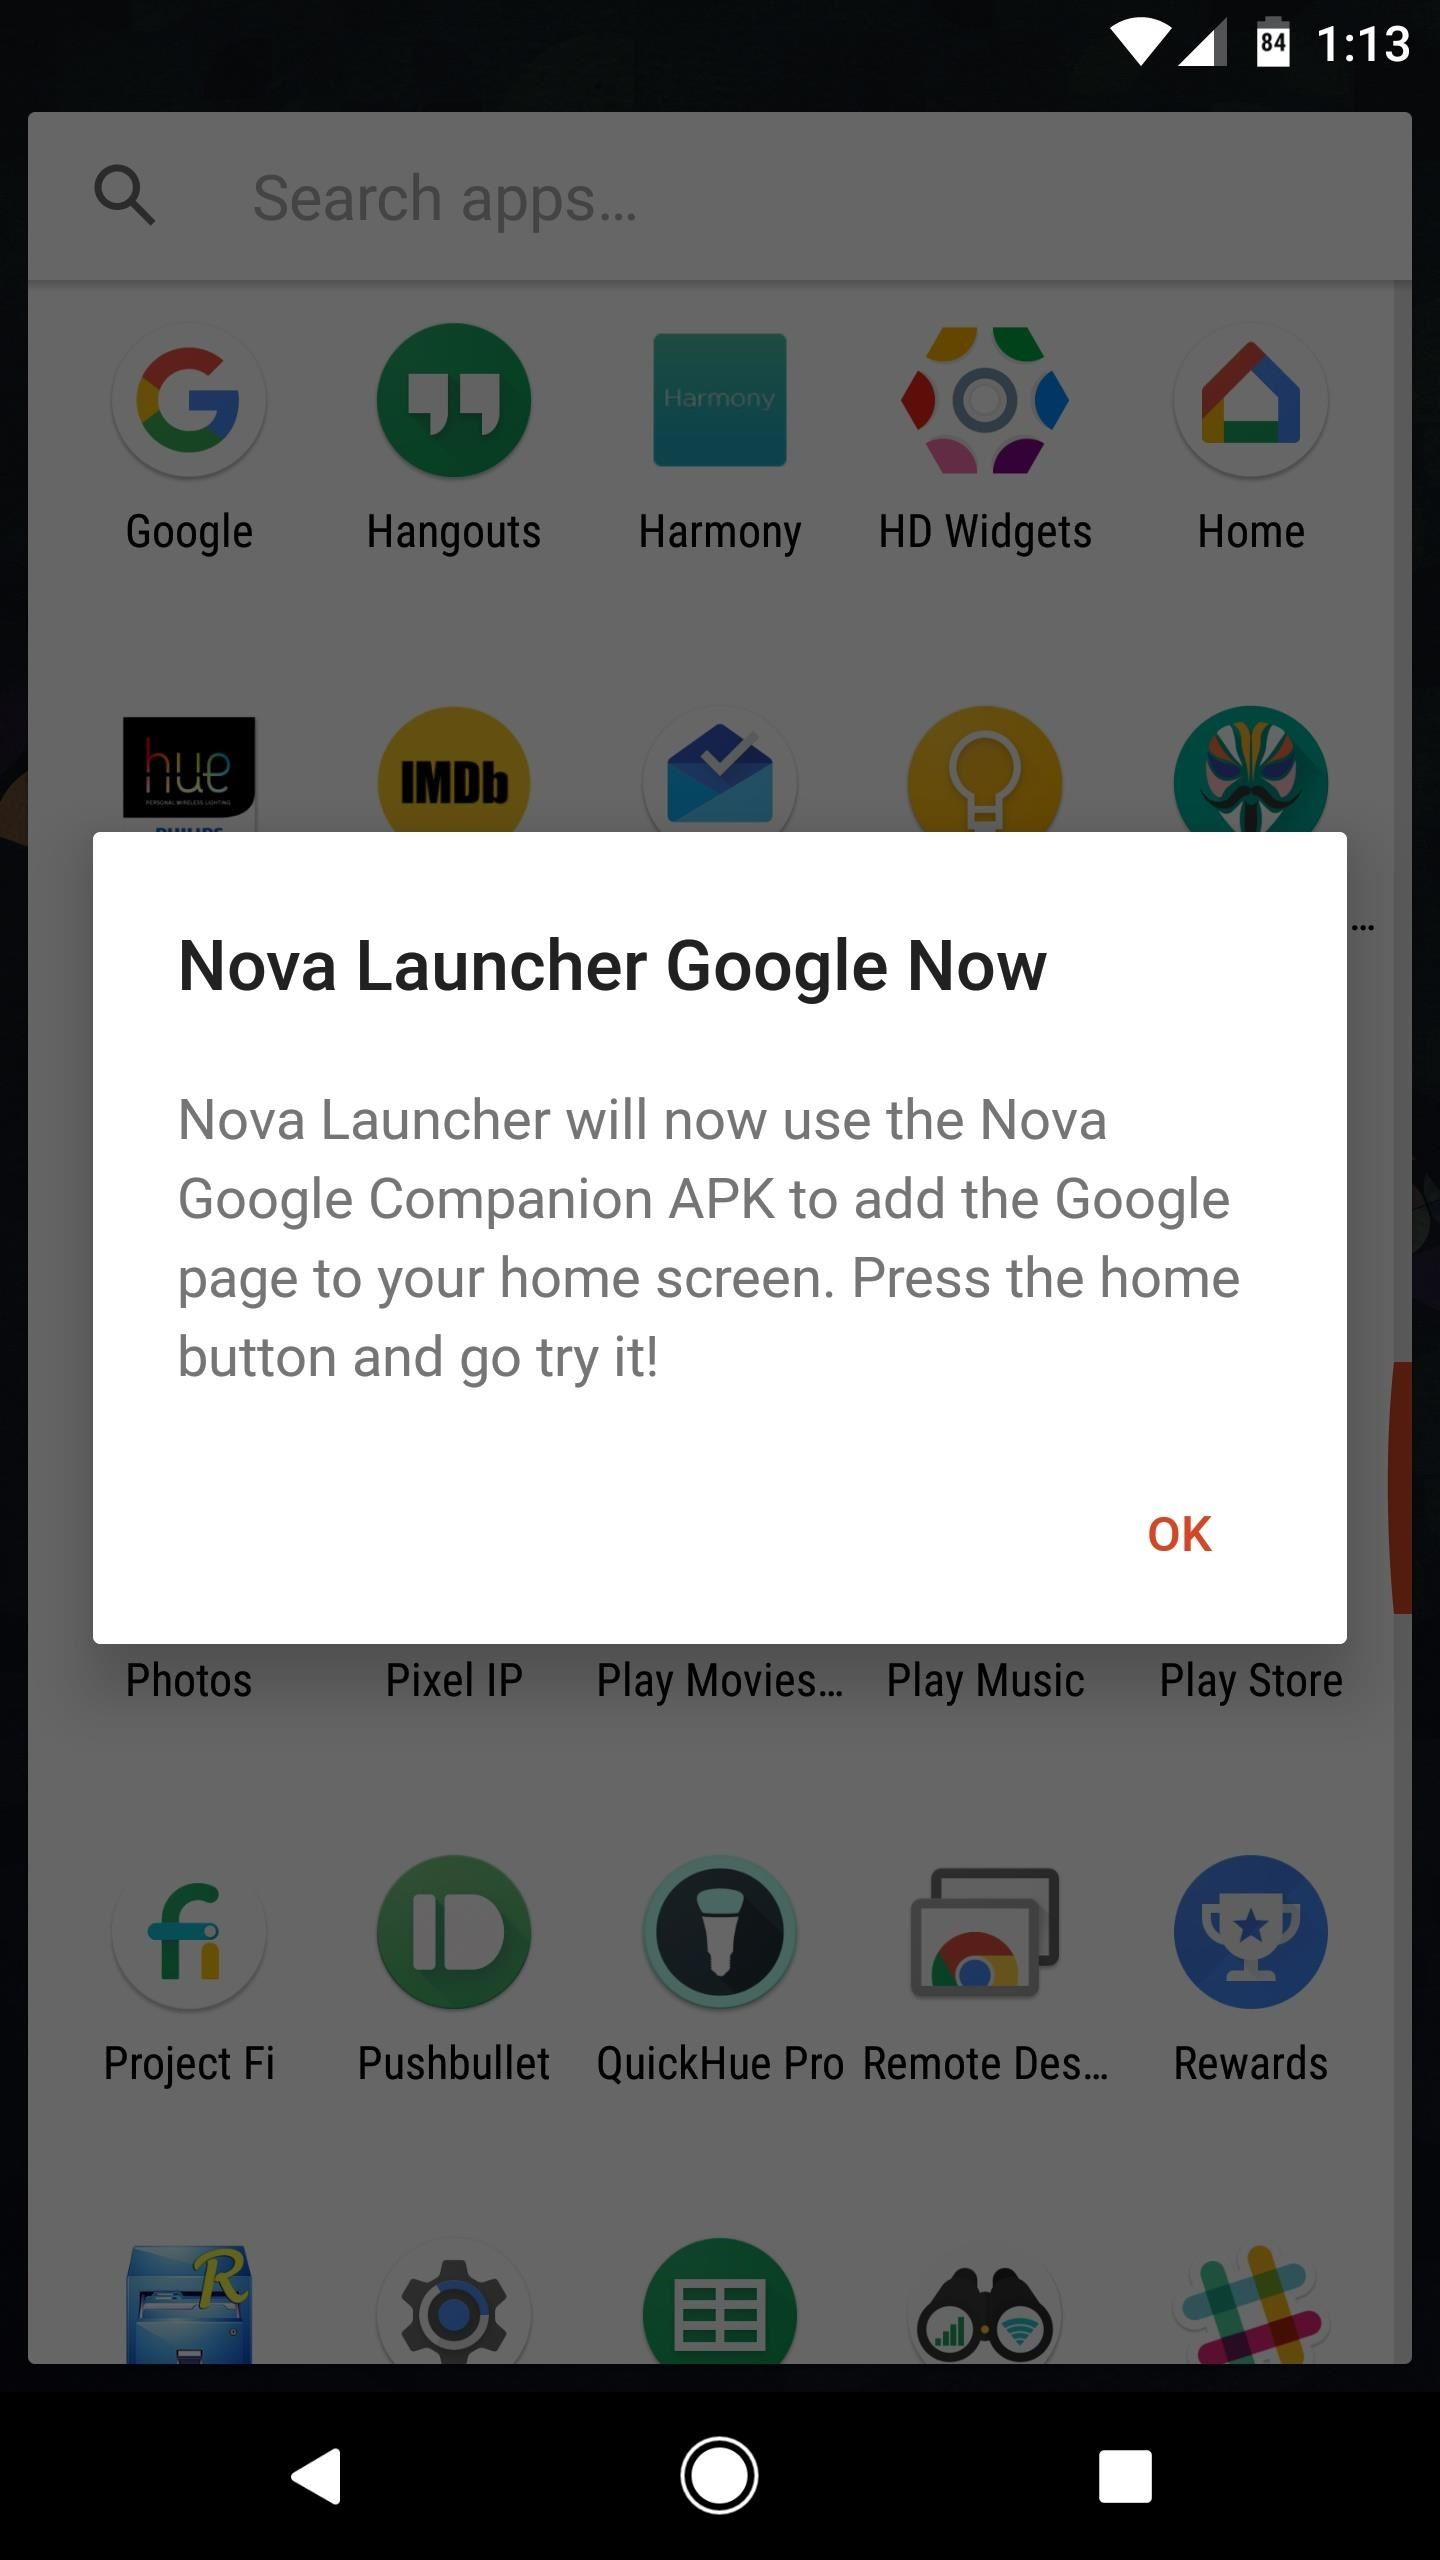 Nova Launcher 101: How to Enable Google Now Integration on Your Home Screen